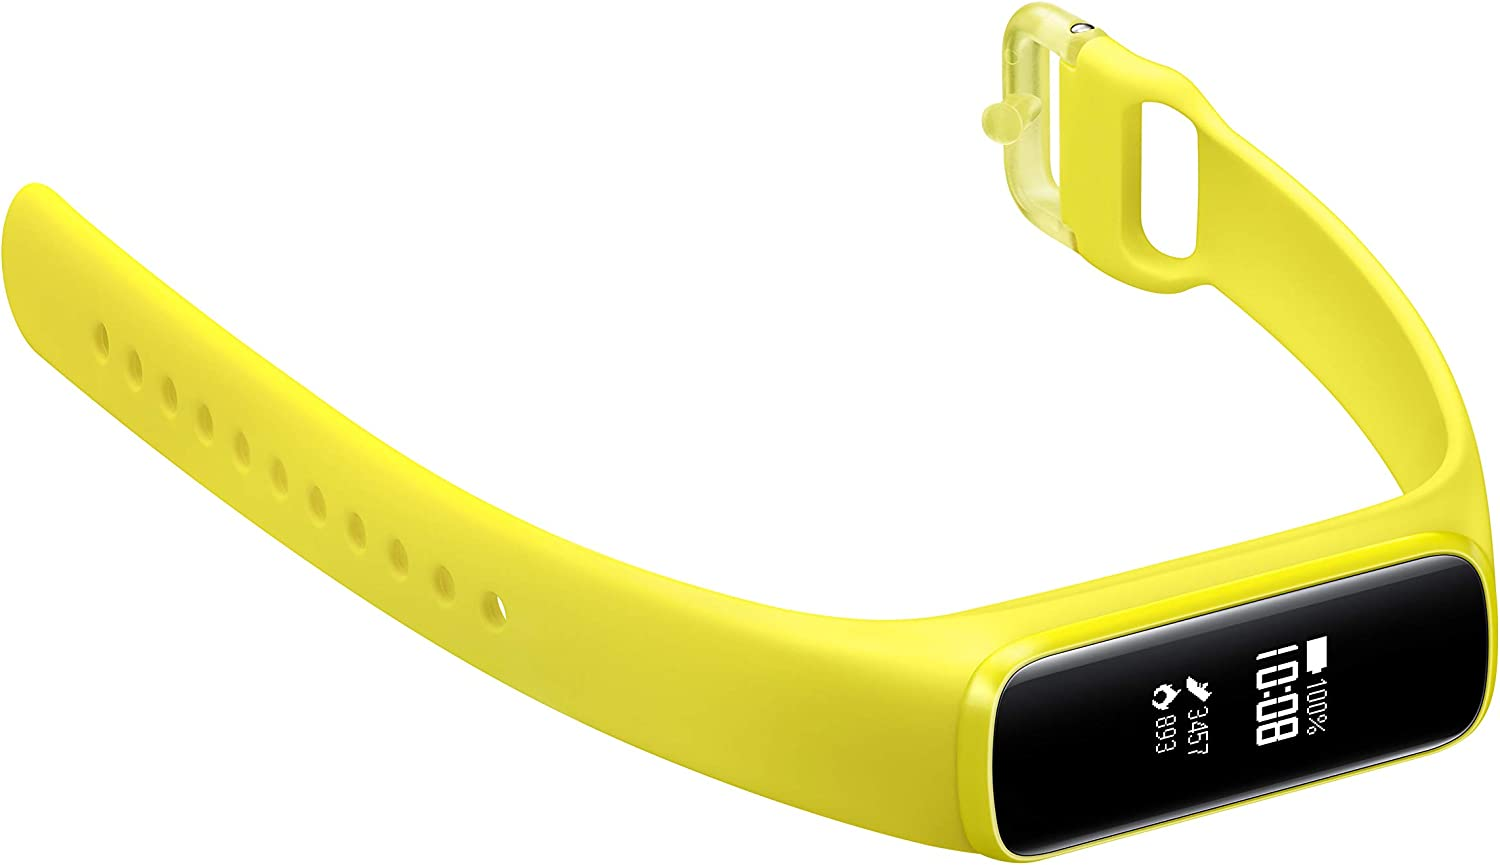 Samsung Galaxy Fit e Fitnesstracker gelb um 15,50€ anstatt 23,90€